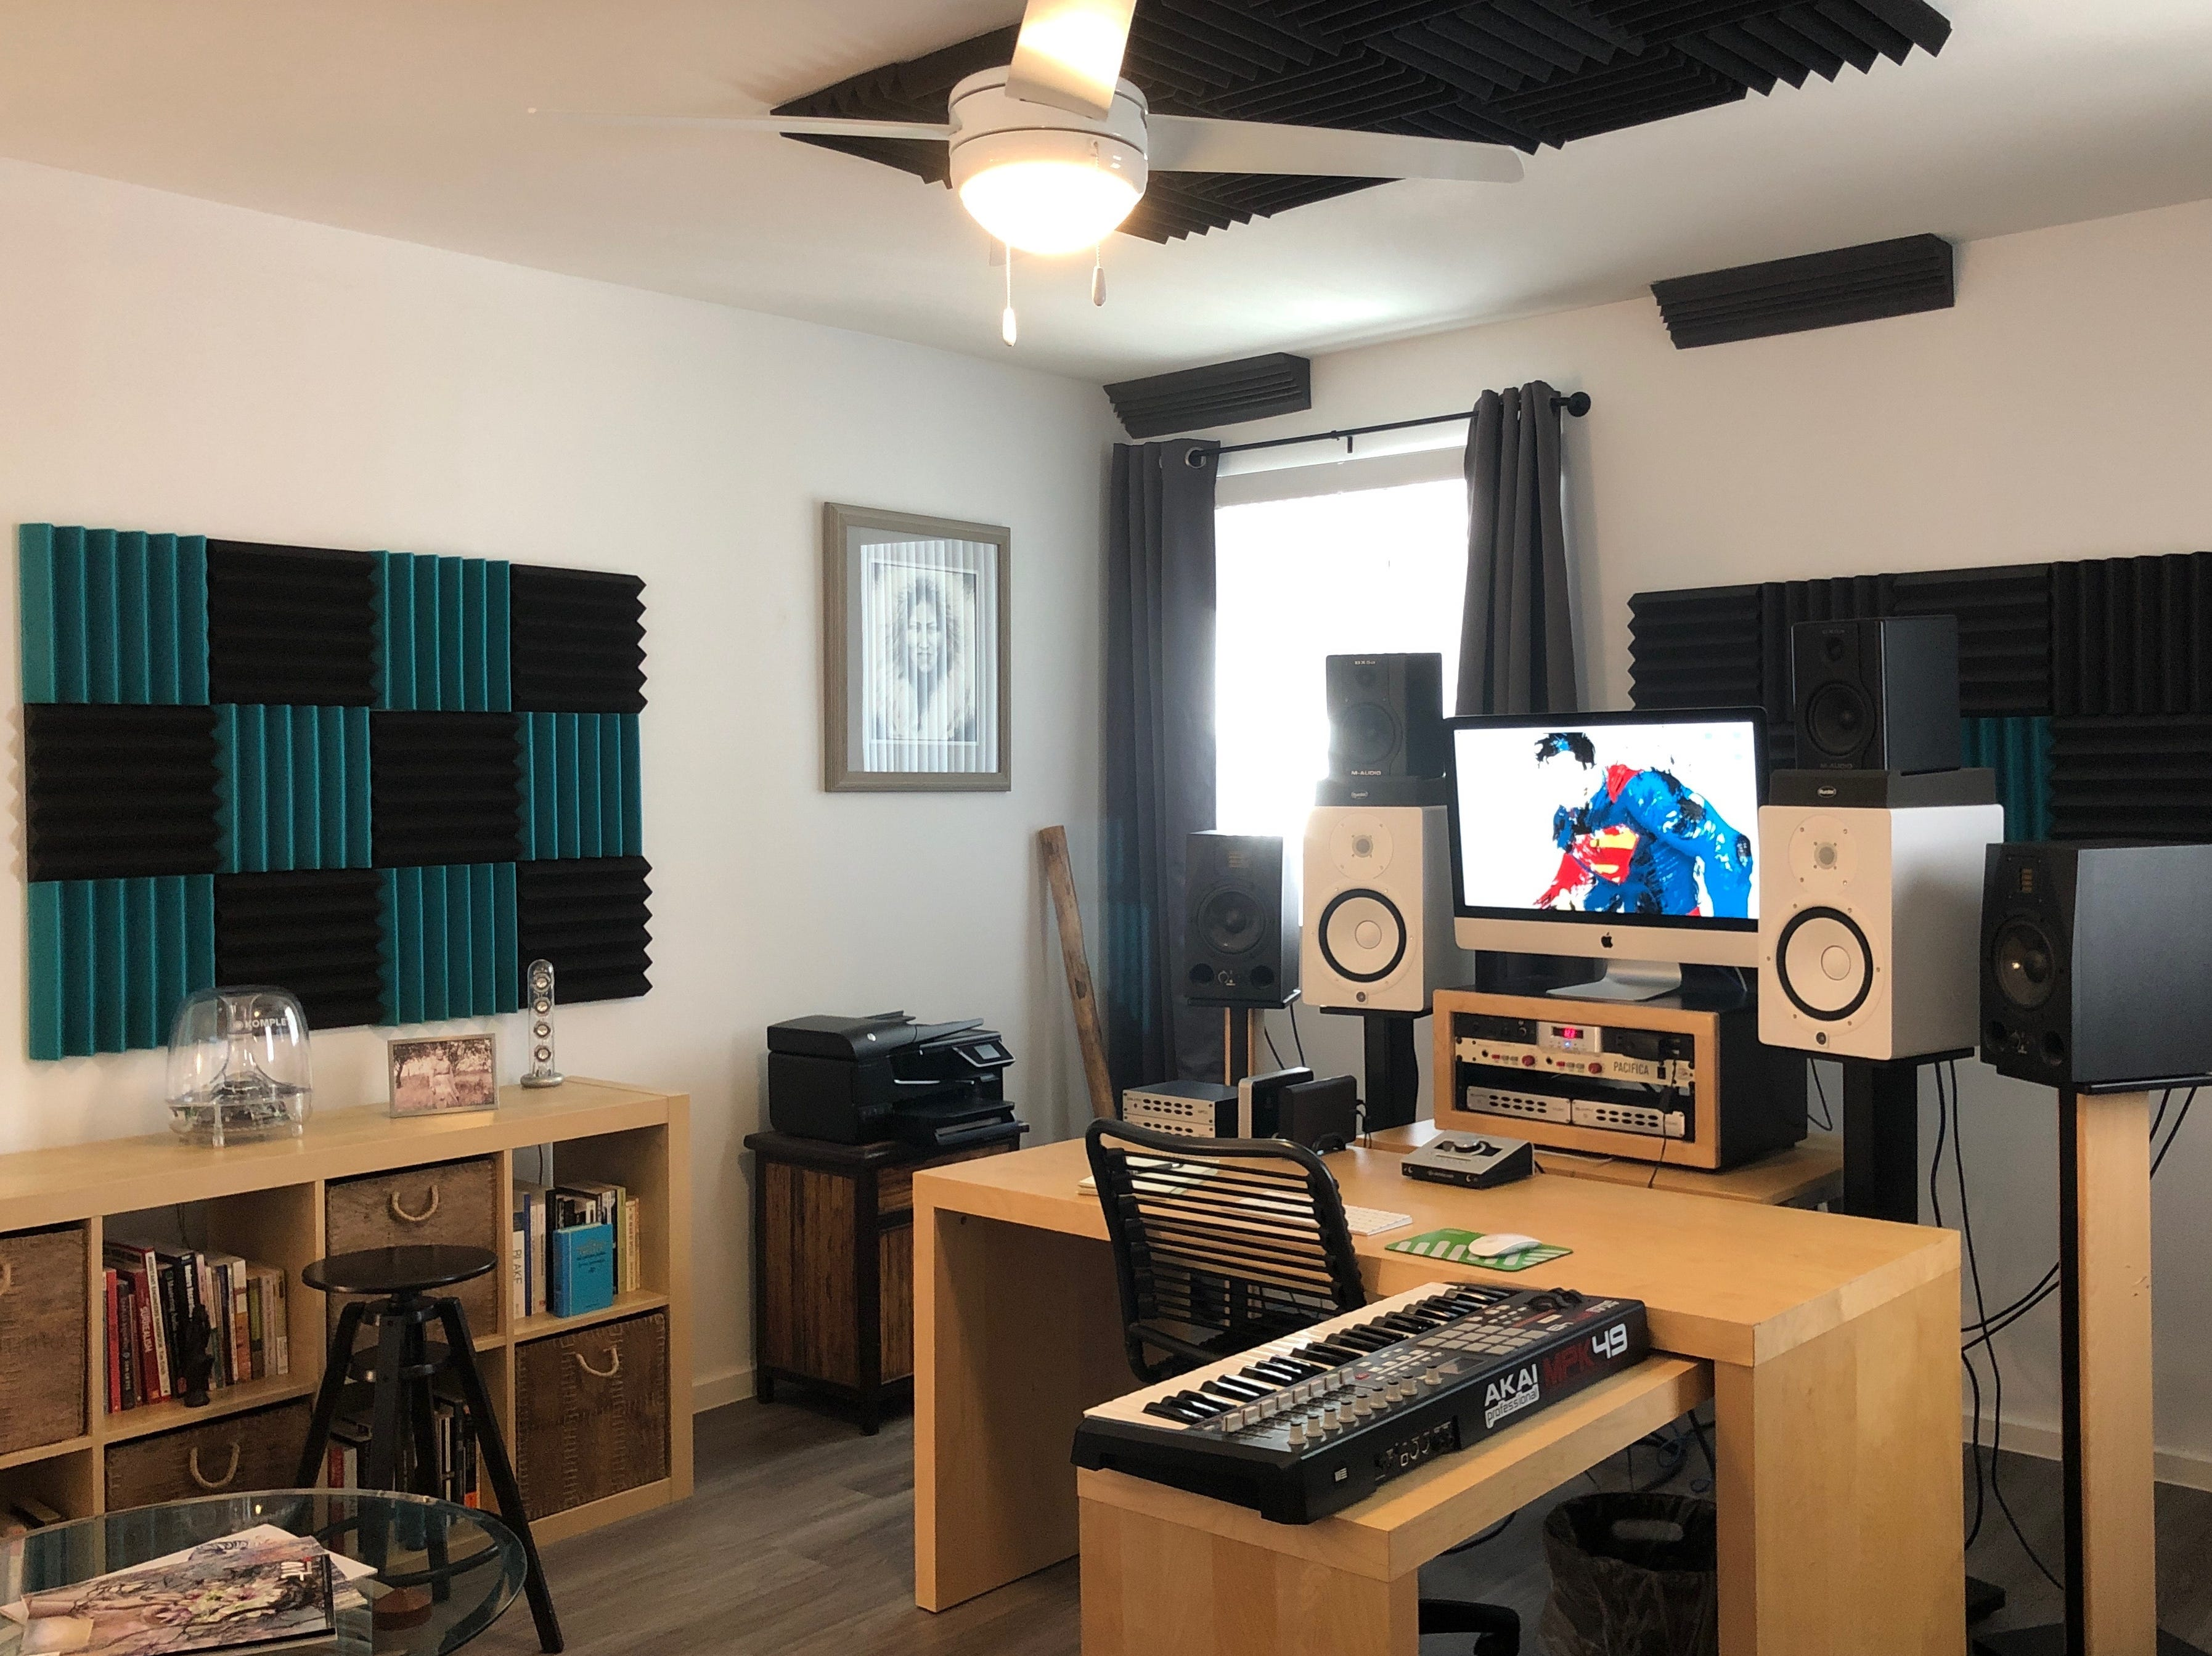 Drexler set up the second story of his loft as his production hub, complete with a variety of sound equipment and even strategic soundproofing on the walls and ceiling.